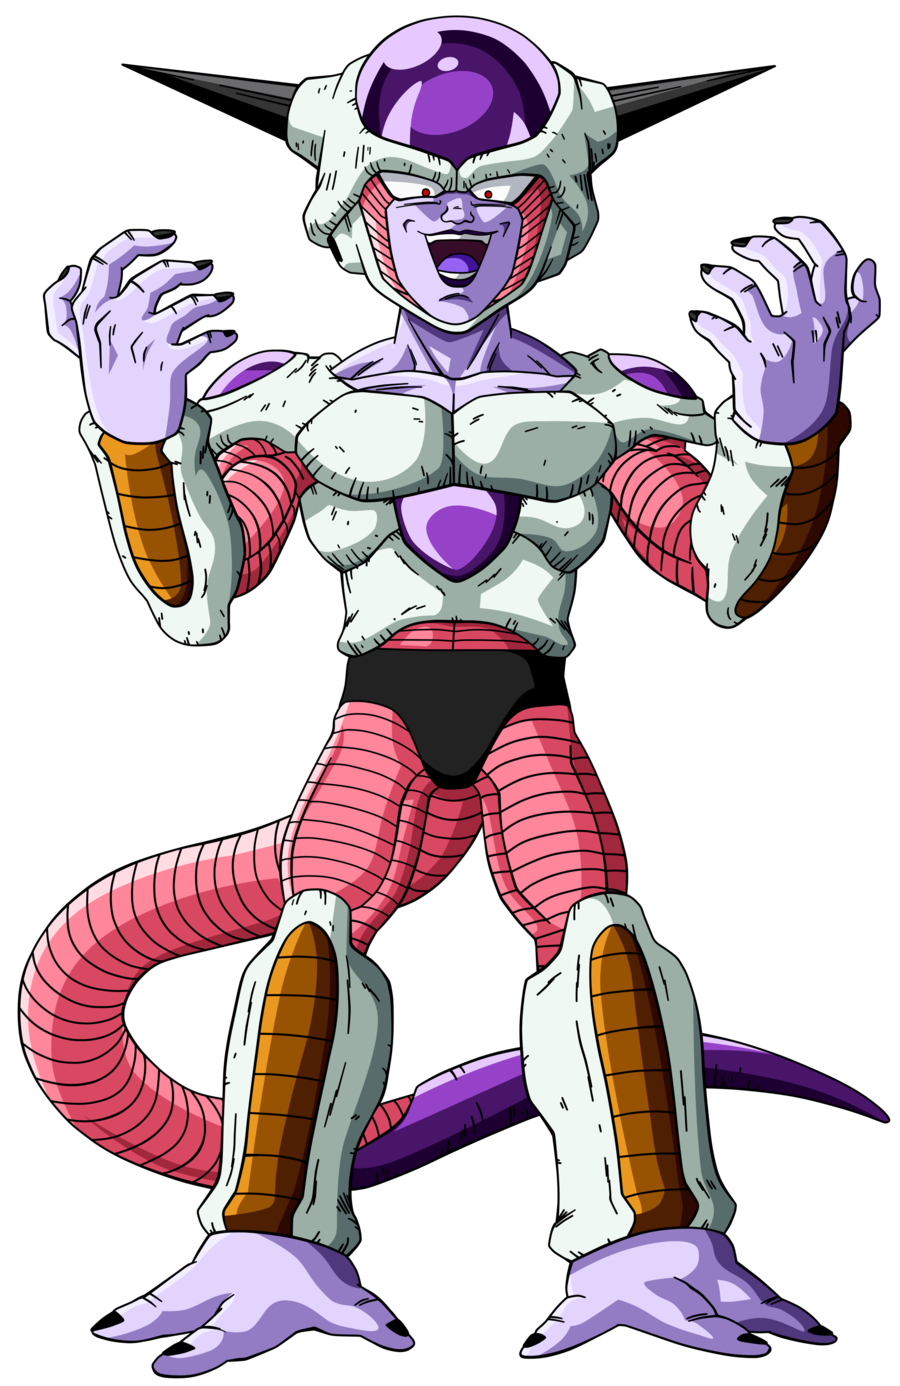 Frieza (disambiguation)